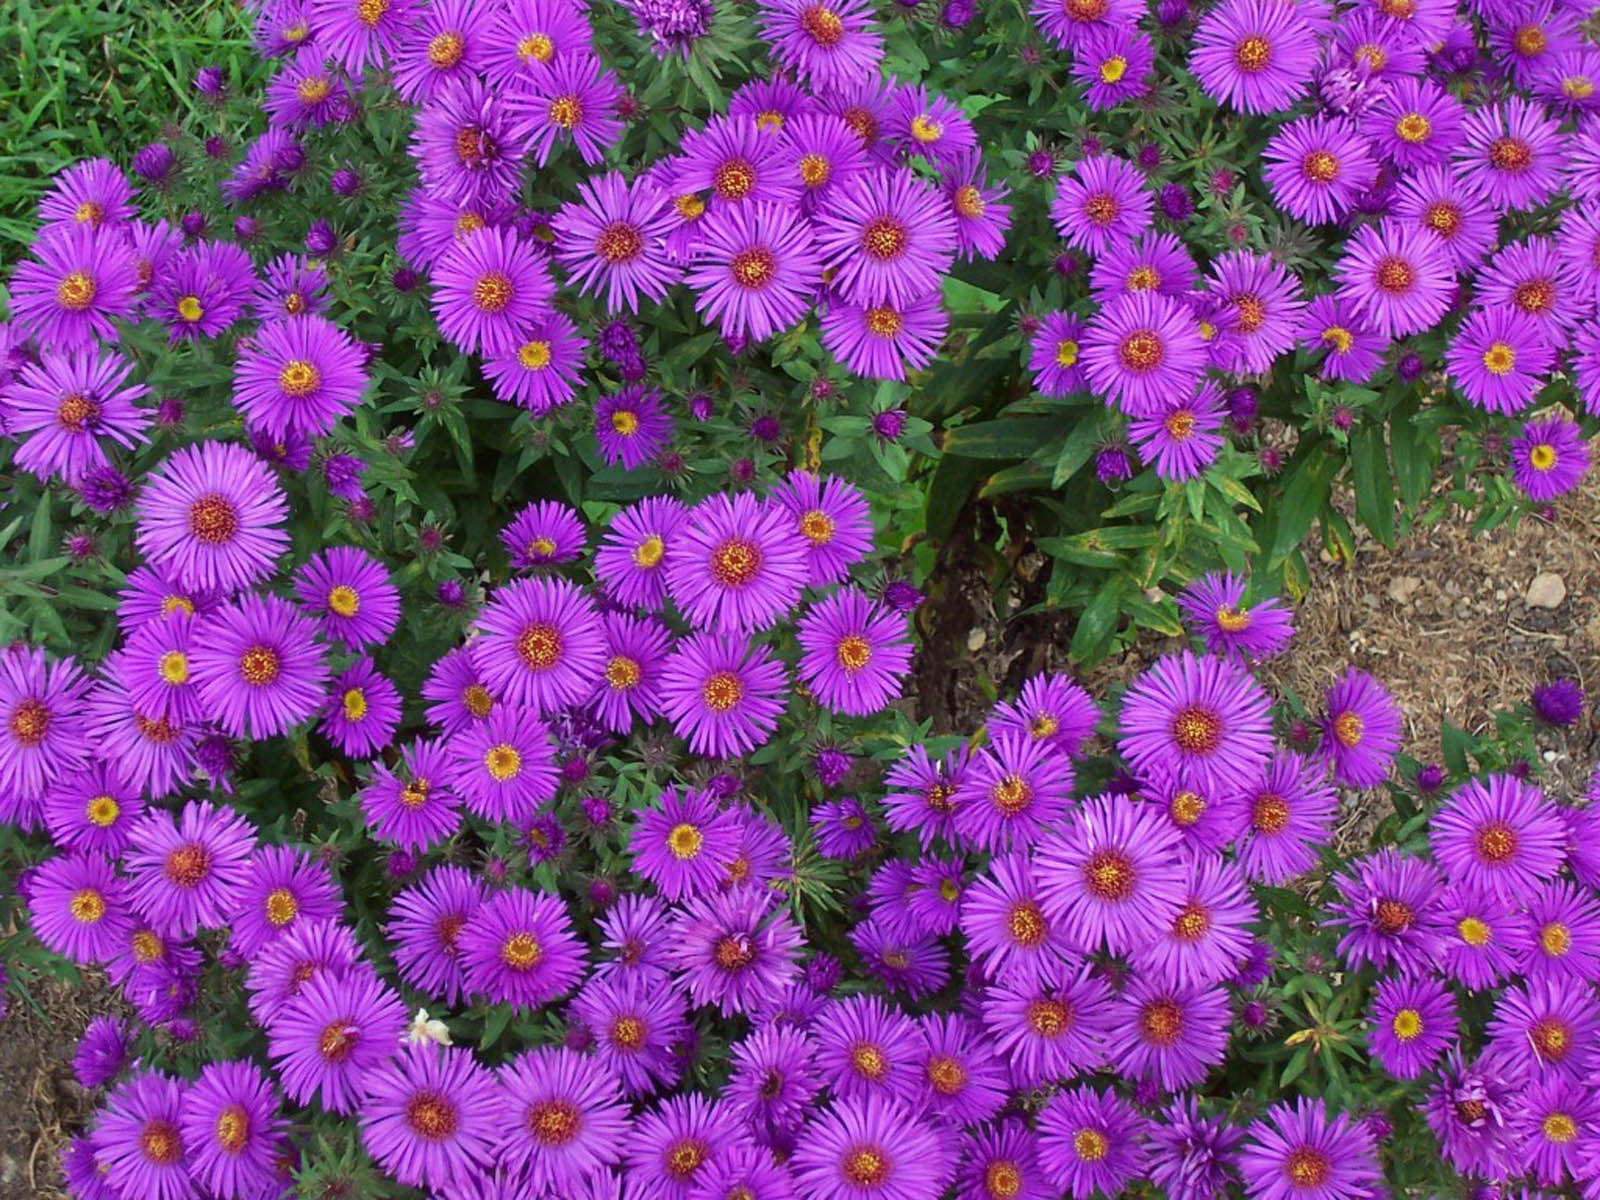 ... Aster Flowers Desktop Backgrounds, Aster Flowers Photos,Aster Flowers: wallpapers-xs.blogspot.com/2013/02/aster-flowers-wallpapers.html